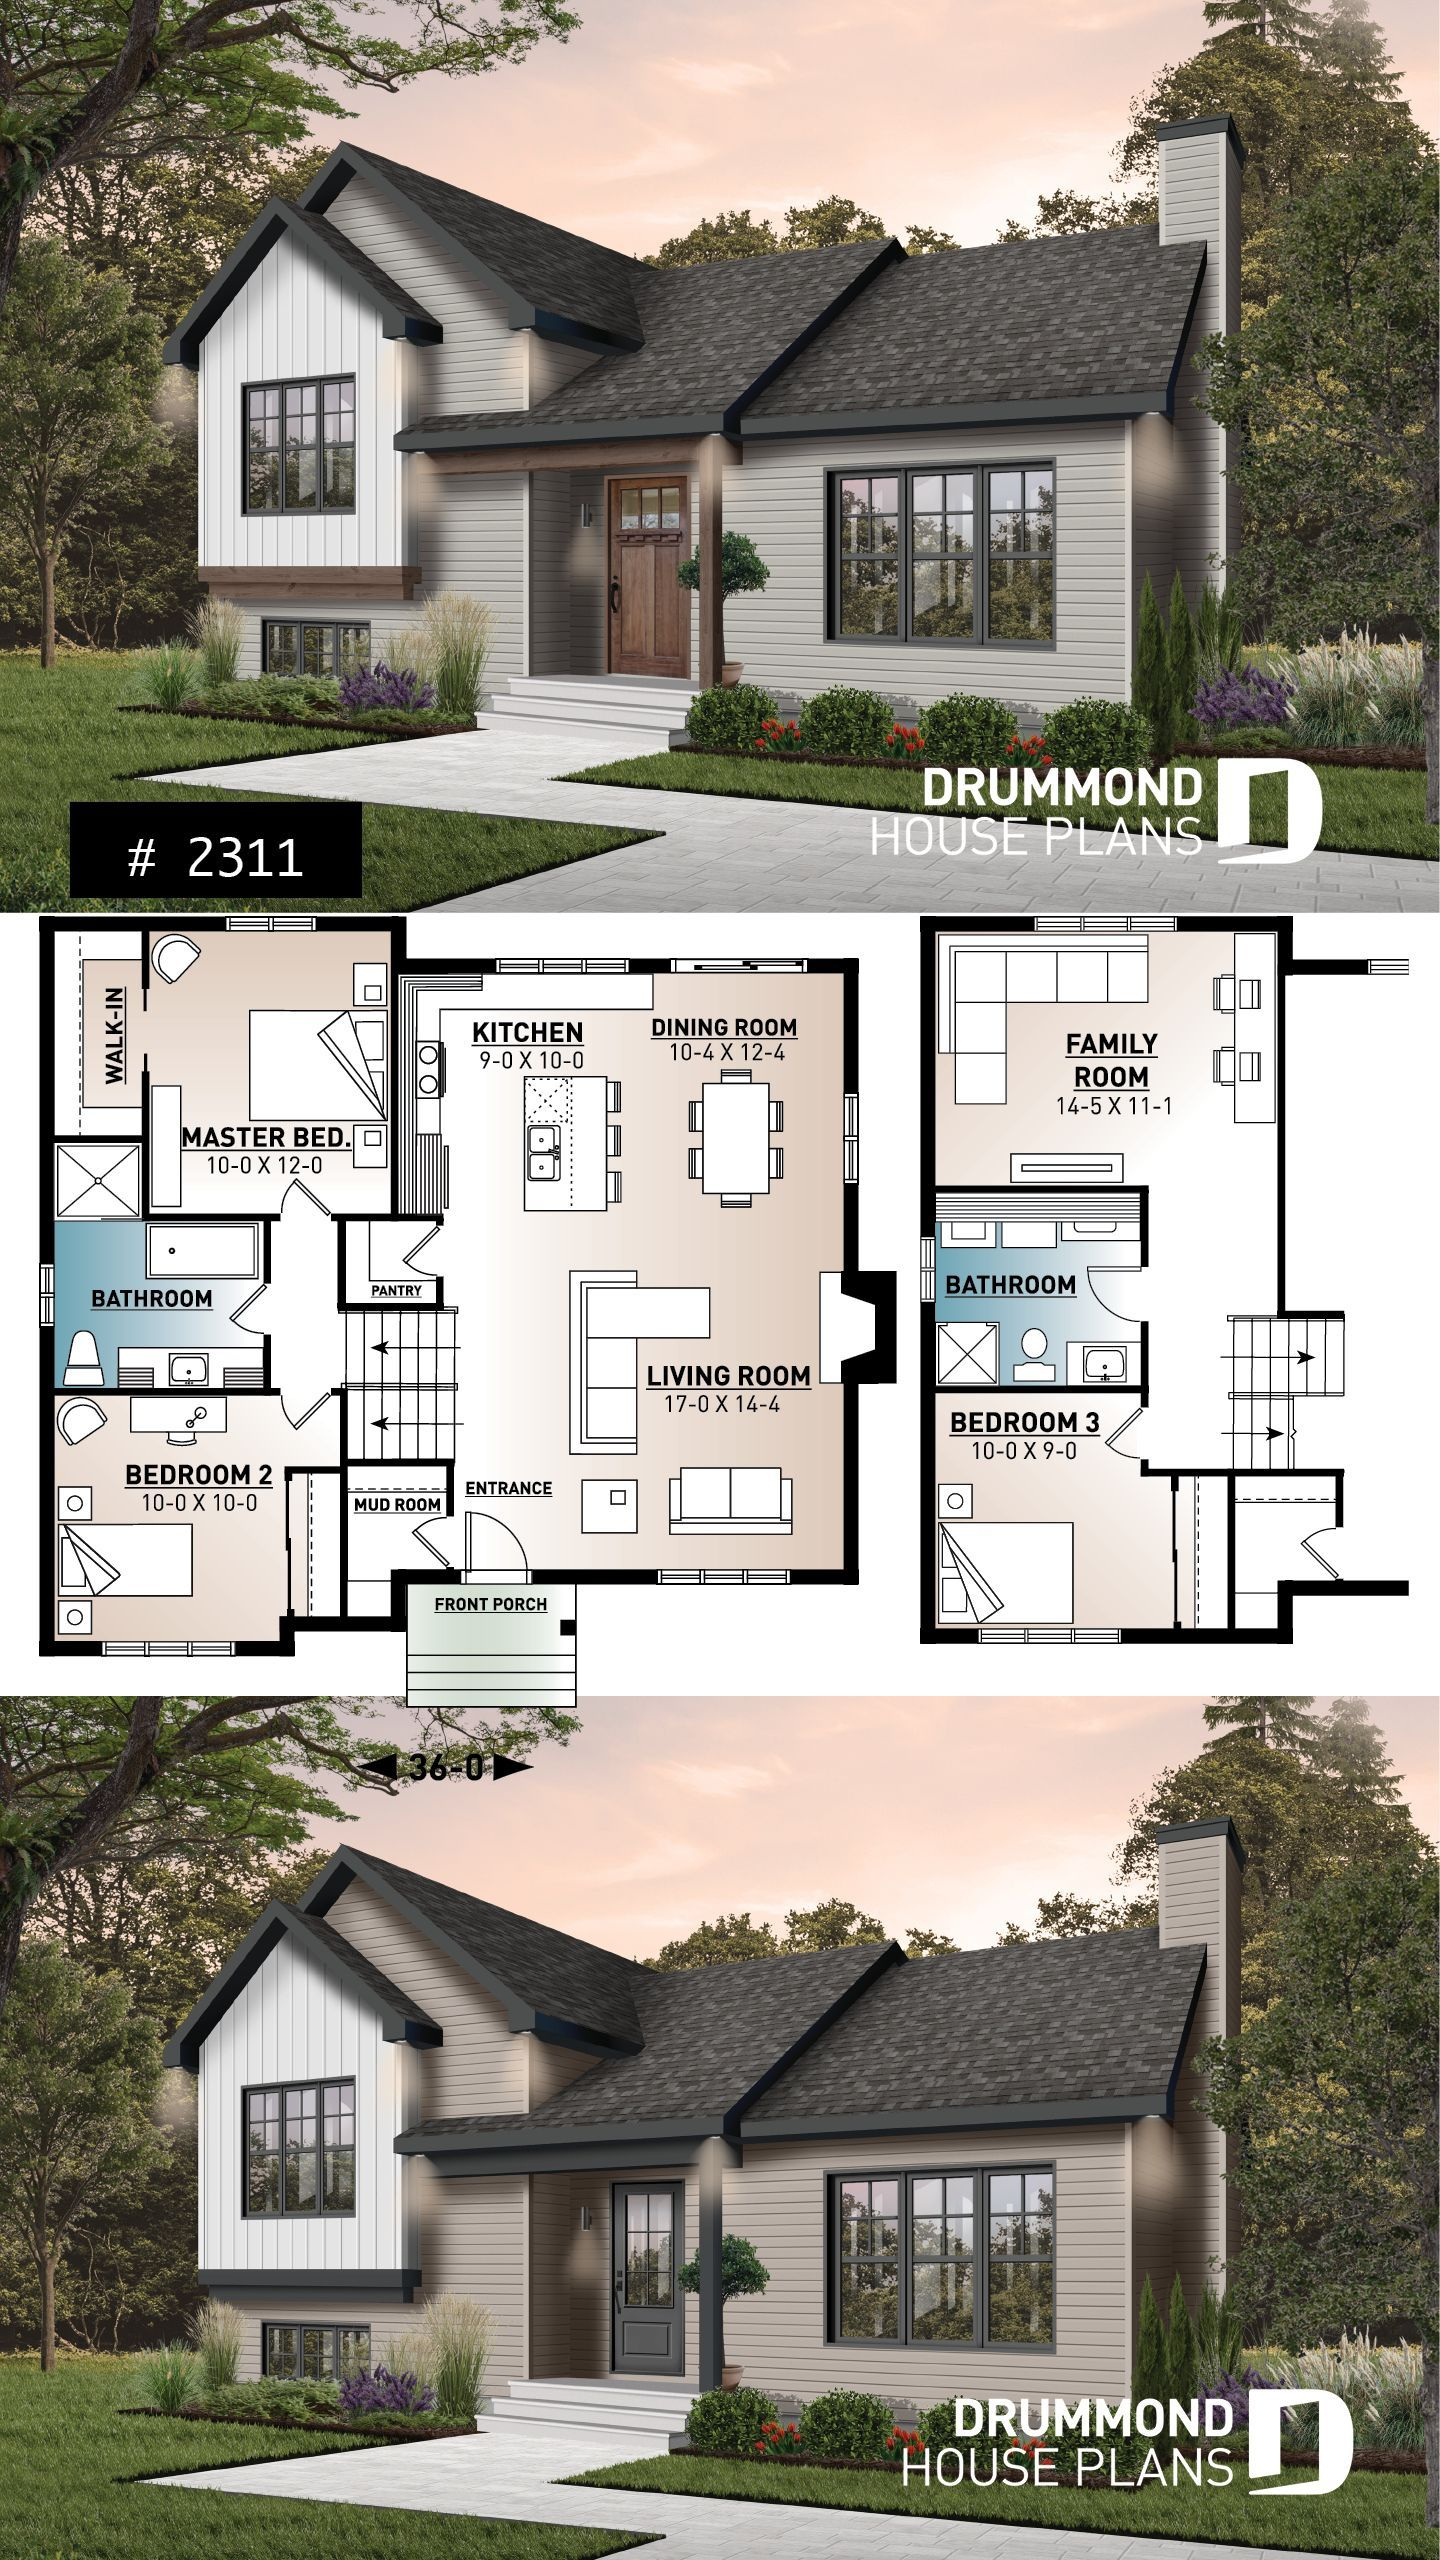 Small 3 Bedroom Farmhouse With Open Space Cathedral Ceiling Pantry Mud Room And Split Level Kitch Sims House Plans Small House Design House Plans Farmhouse